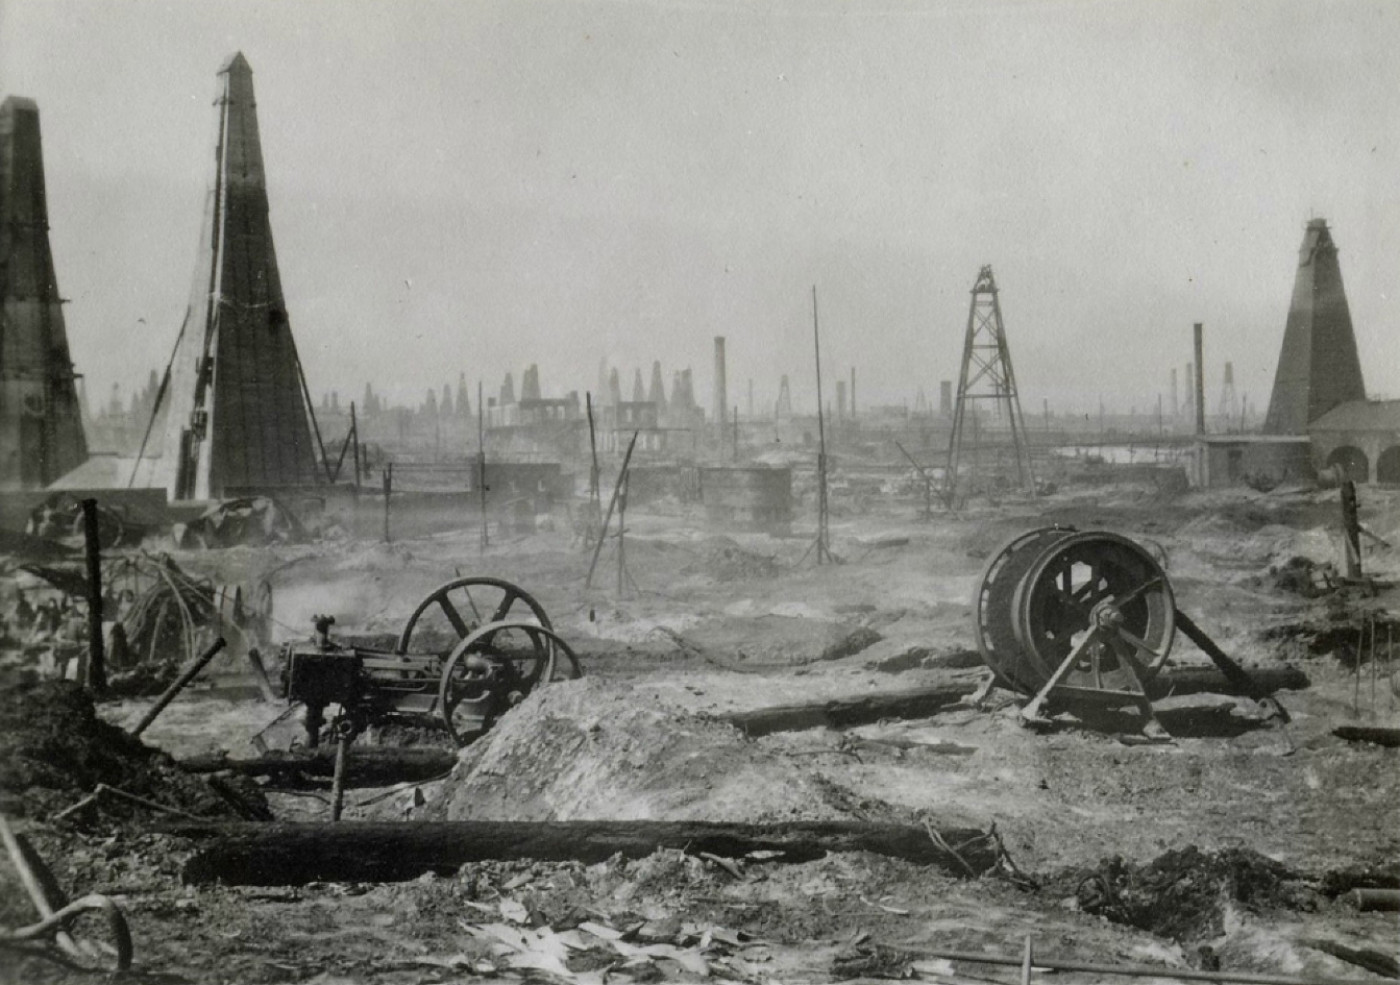 On the territory there was the Nobel brothers' oil production / Technopark on the territory of Boyukshor lake